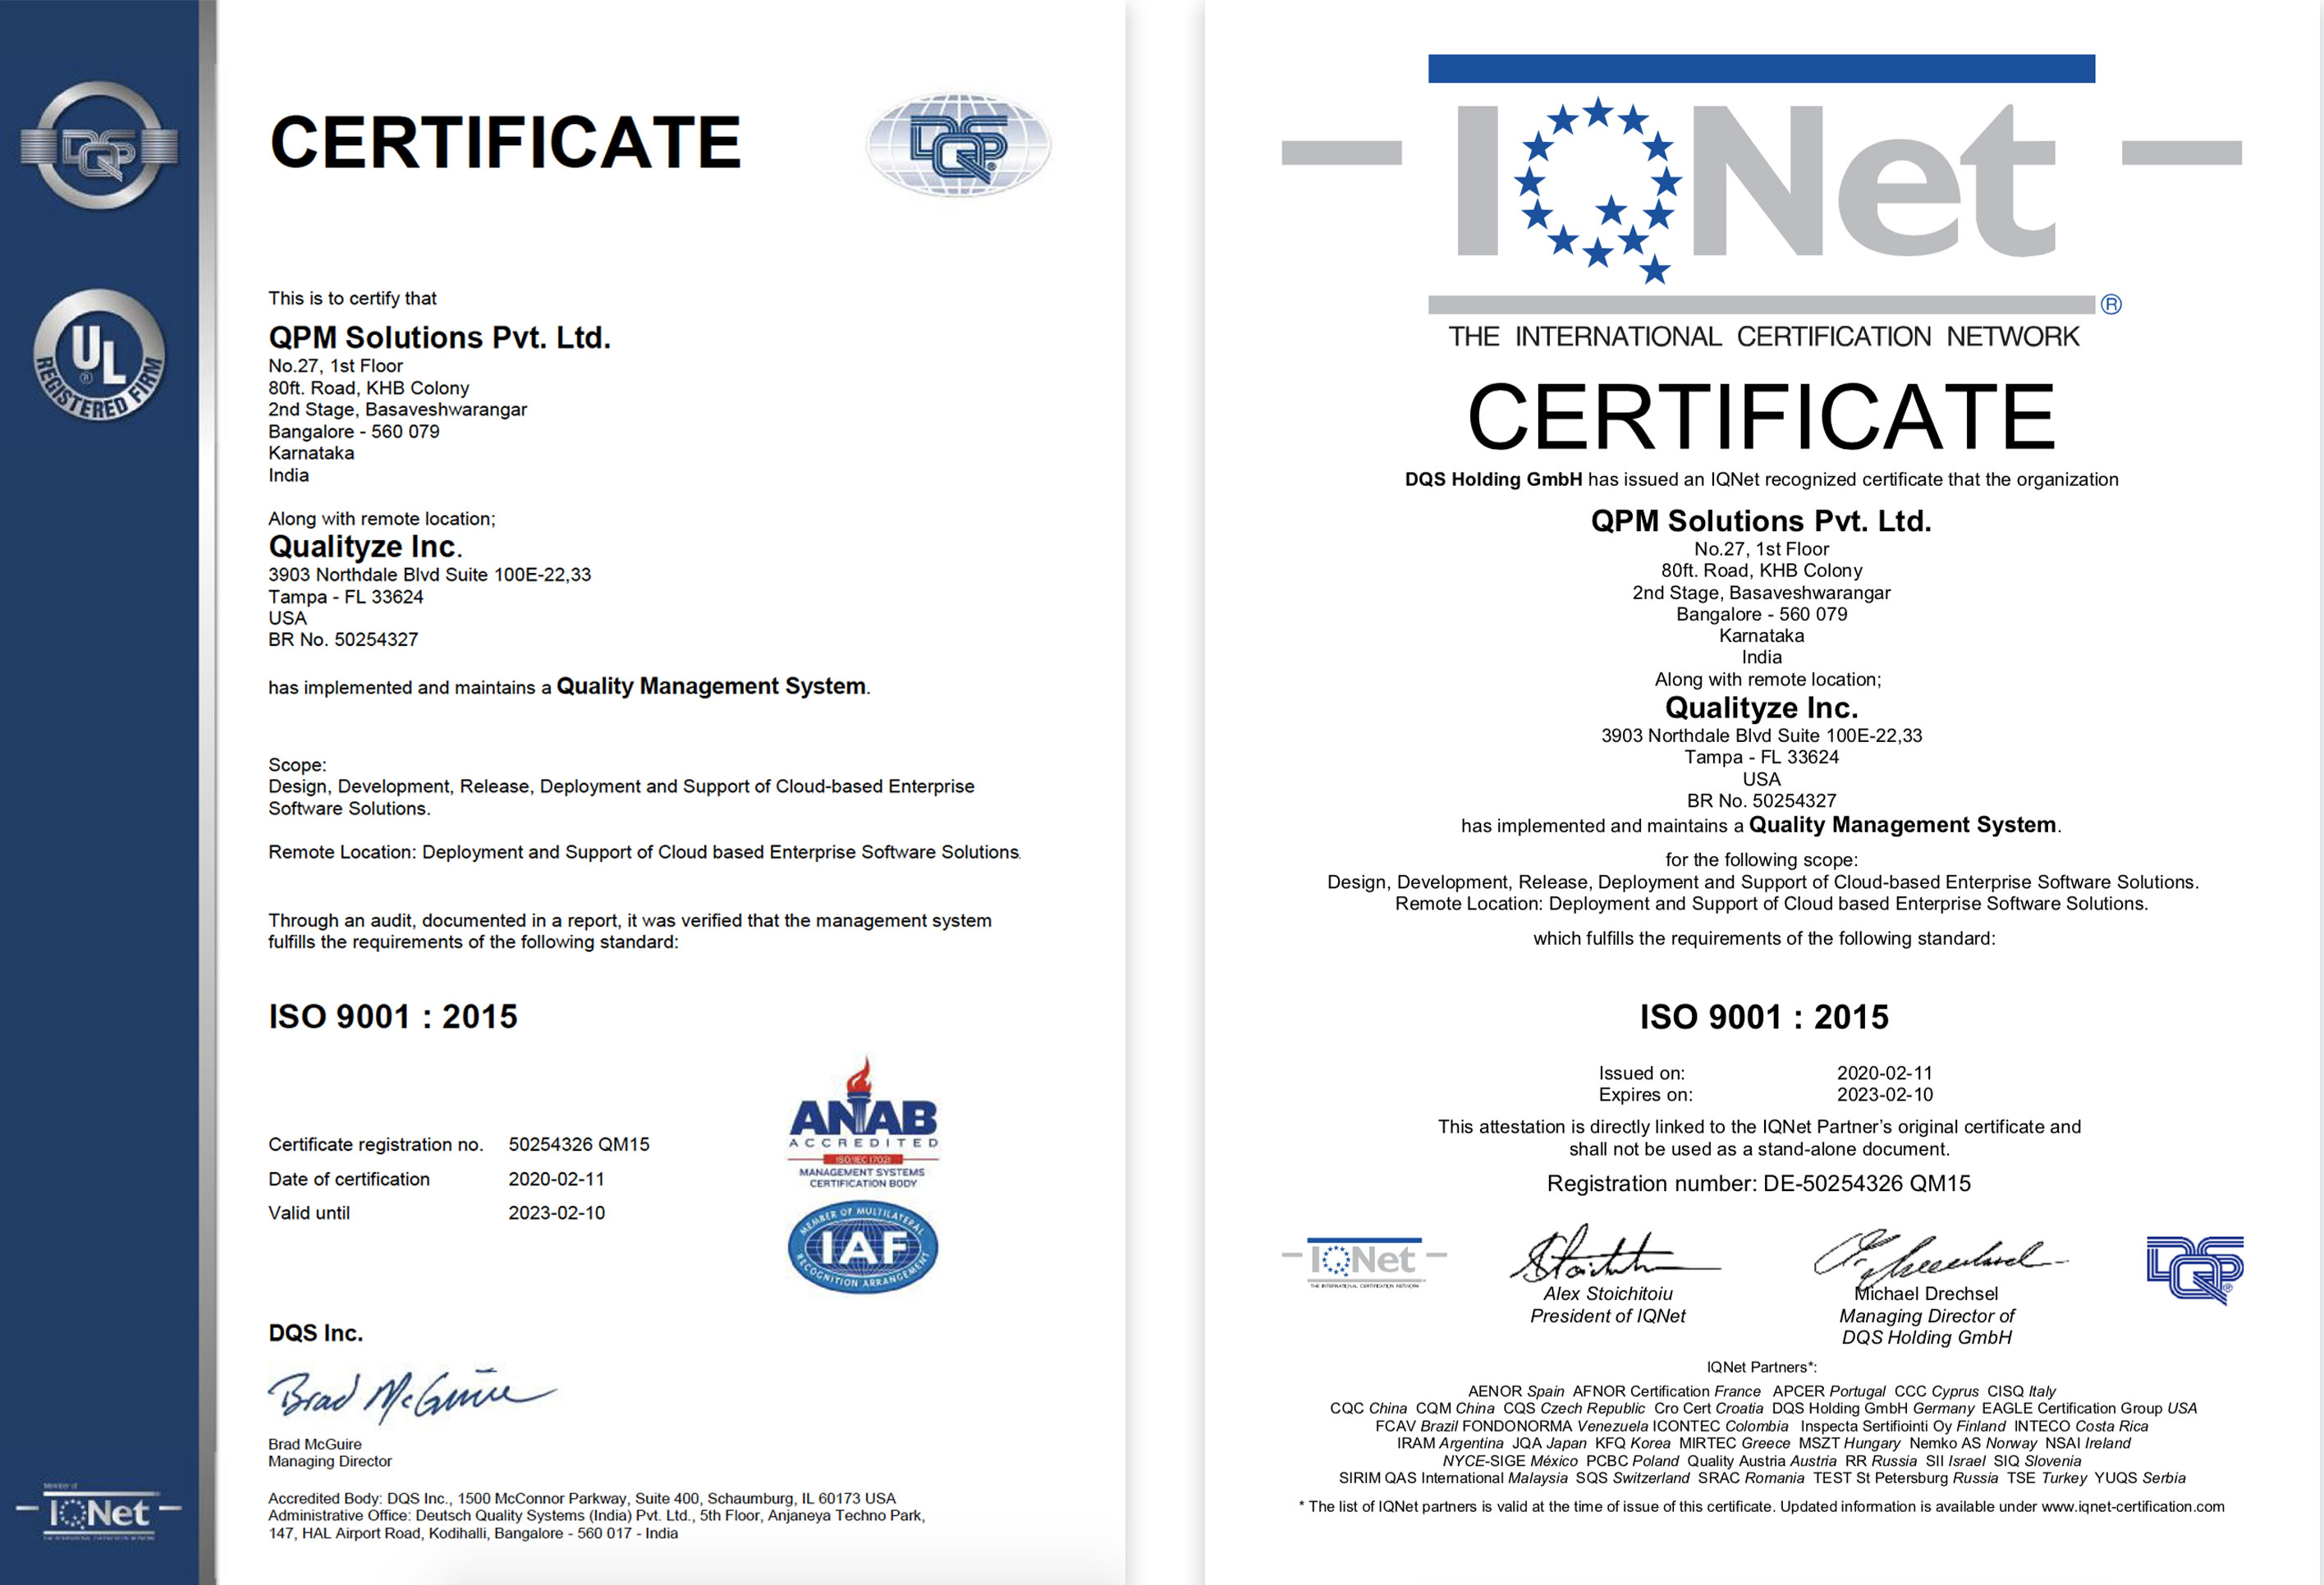 Qualityze Achieves ISO 9001:2015 Quality Management System Certification